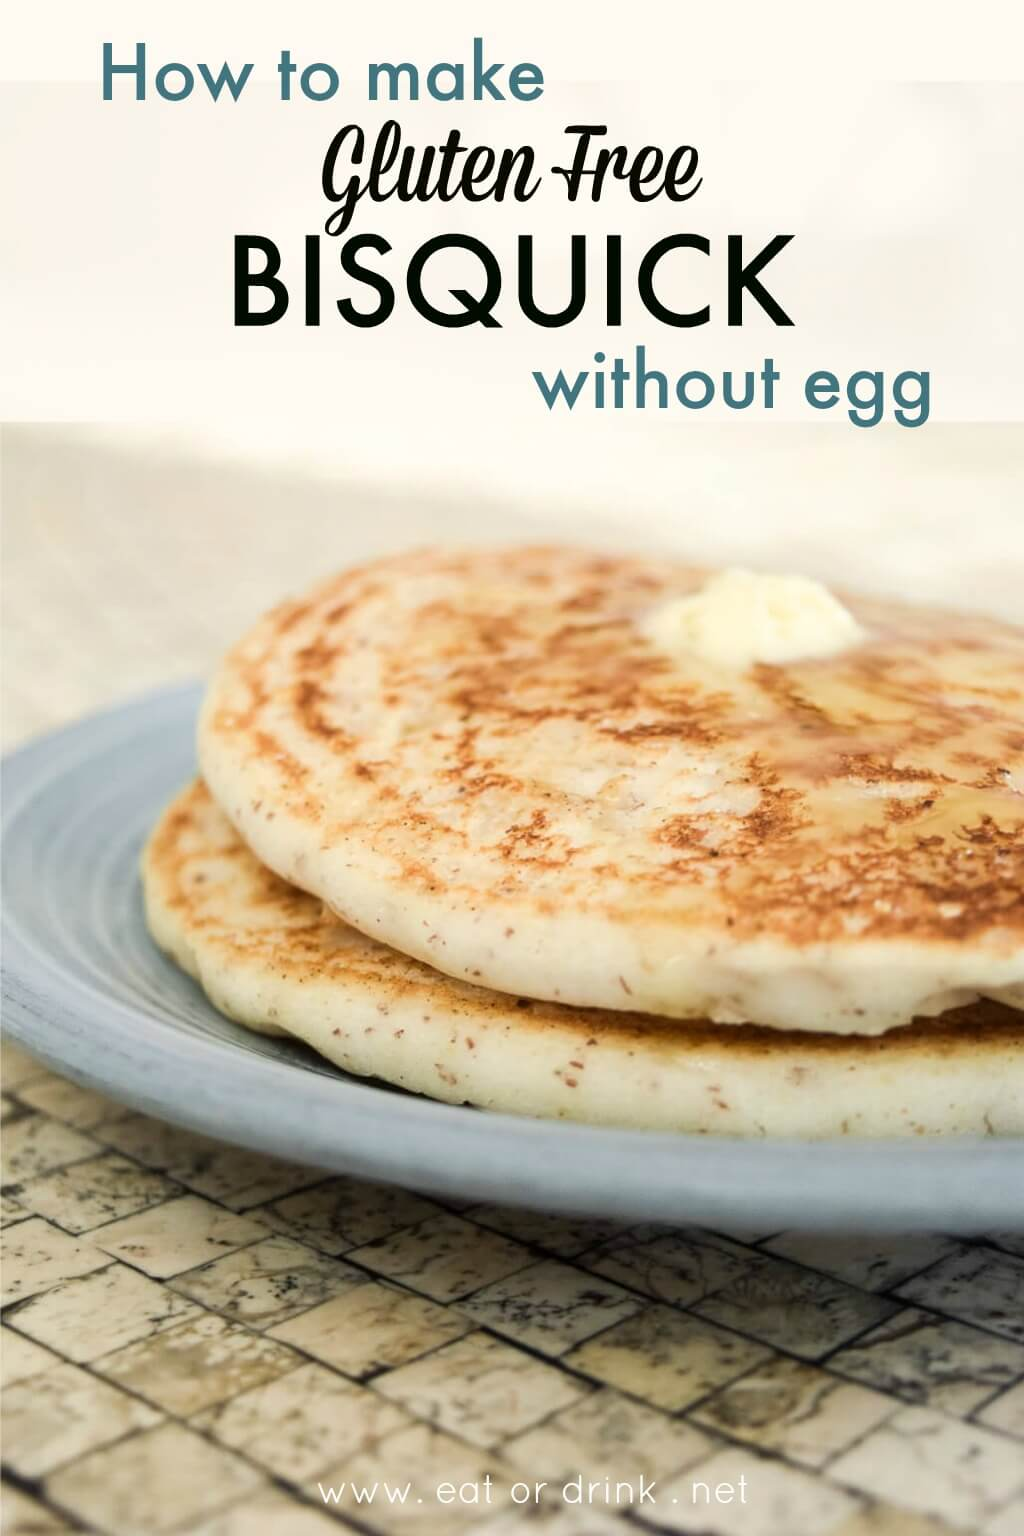 How to make gluten free bisquick pancakes without egg eatordrink how to make gluten free bisquick without egg ccuart Choice Image